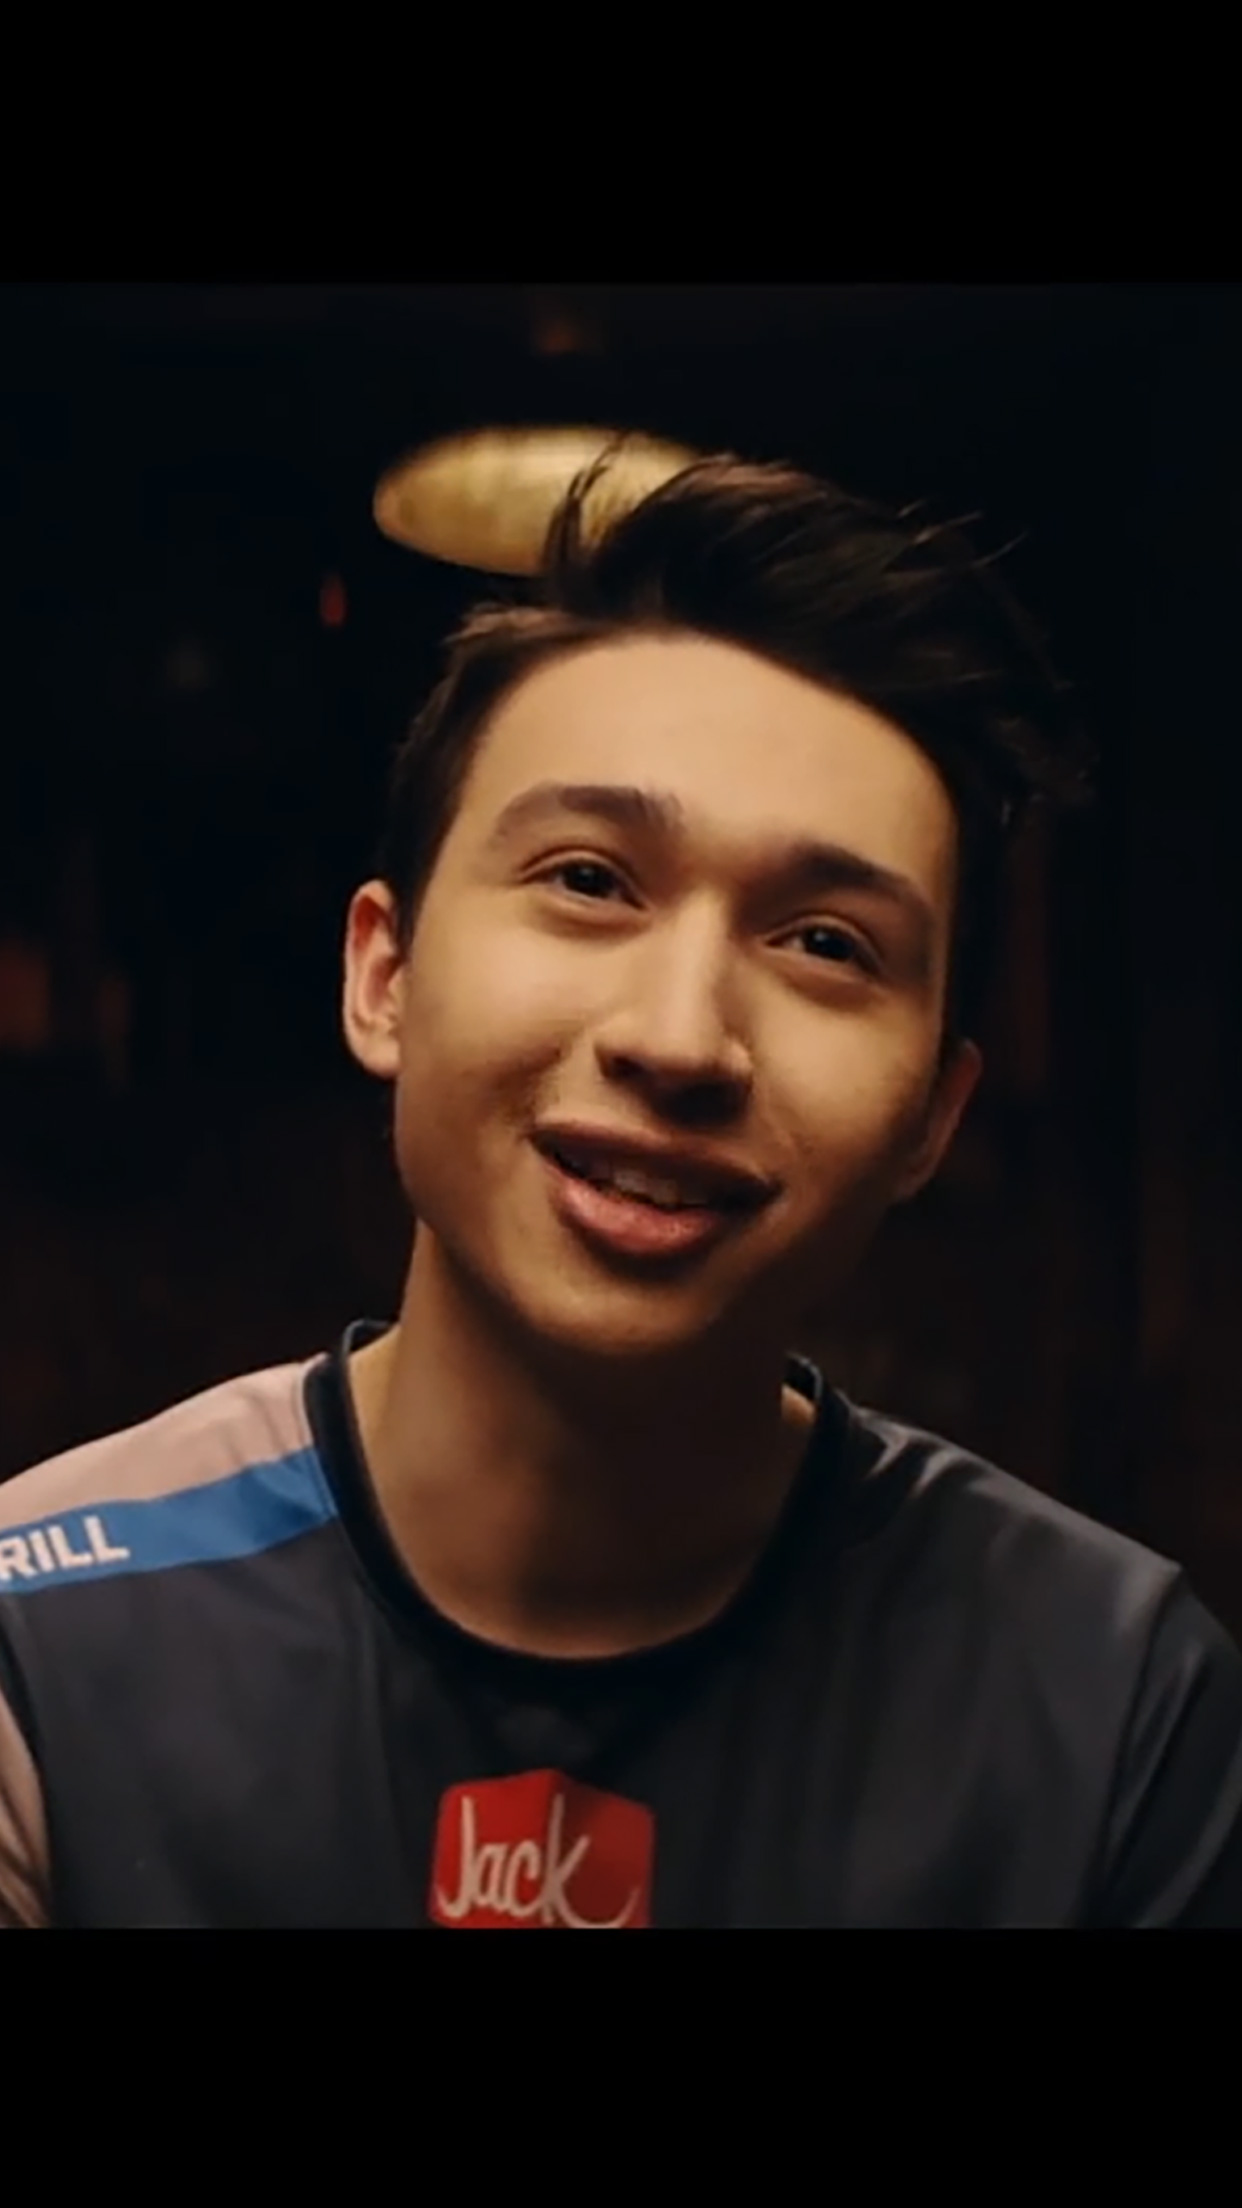 Get a first hand look of Esports and Gaming by watching Intel's Player Profile with Houston Outlaws gamer Danteh.